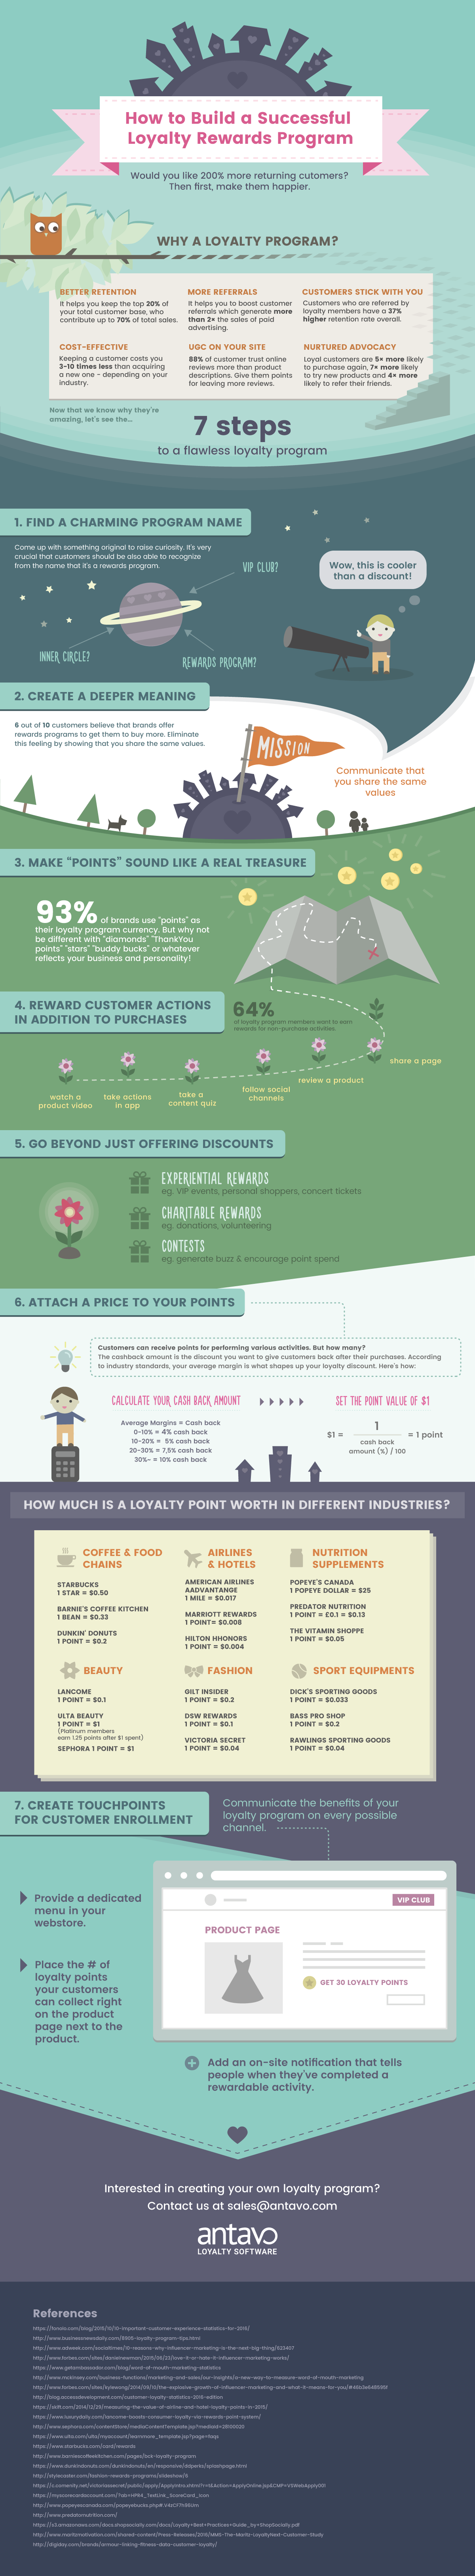 7-steps-to-a-flawless-loyalty-program-infographic-antavo